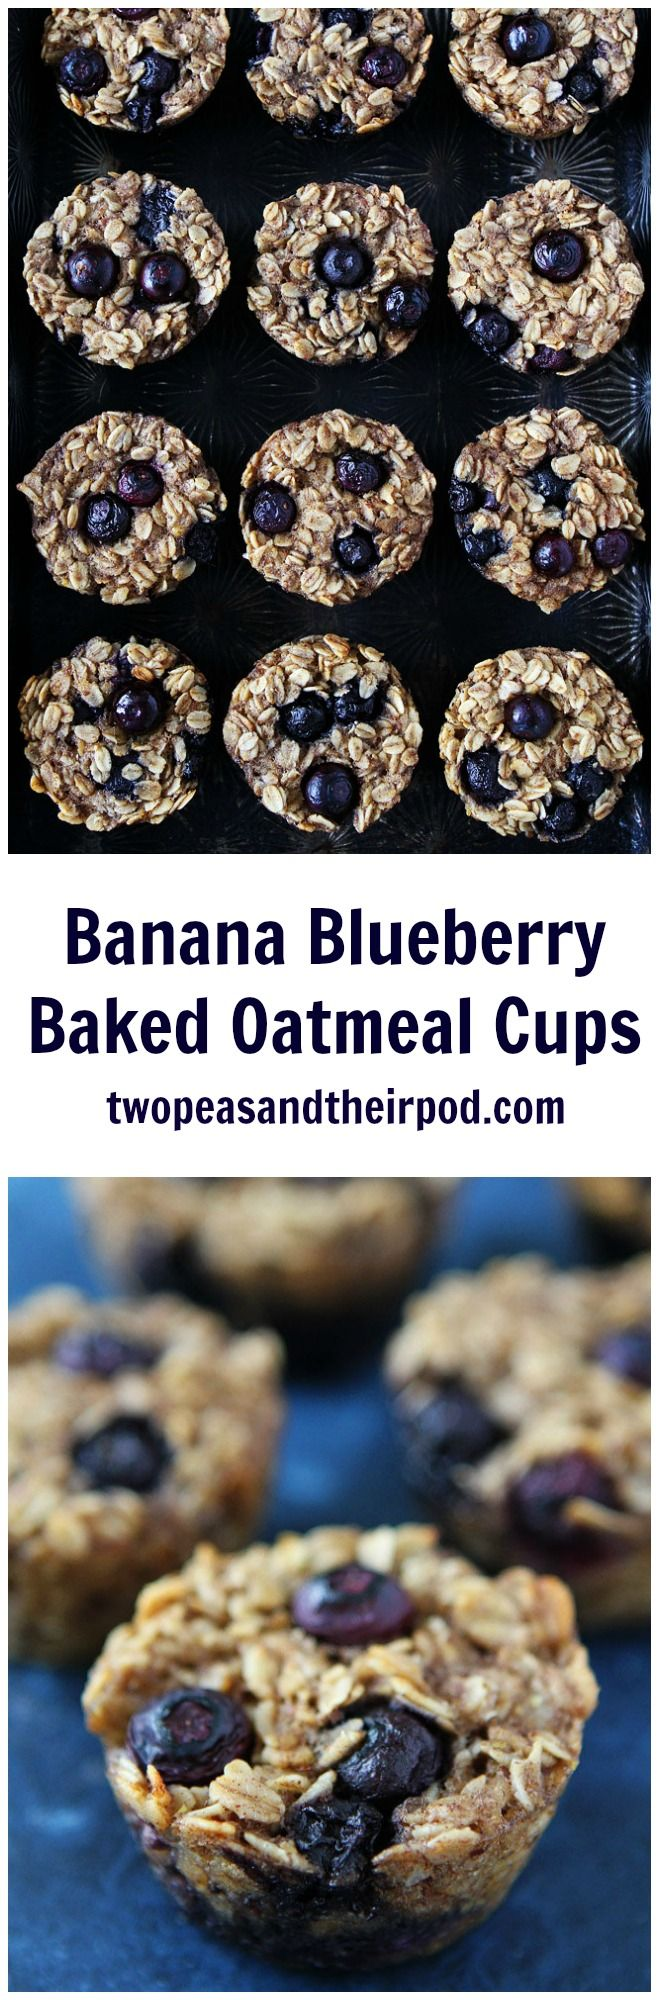 ... banana-blueberry-baked-oatmeal-cups-oatmeal-blueberry-muffins-healthy